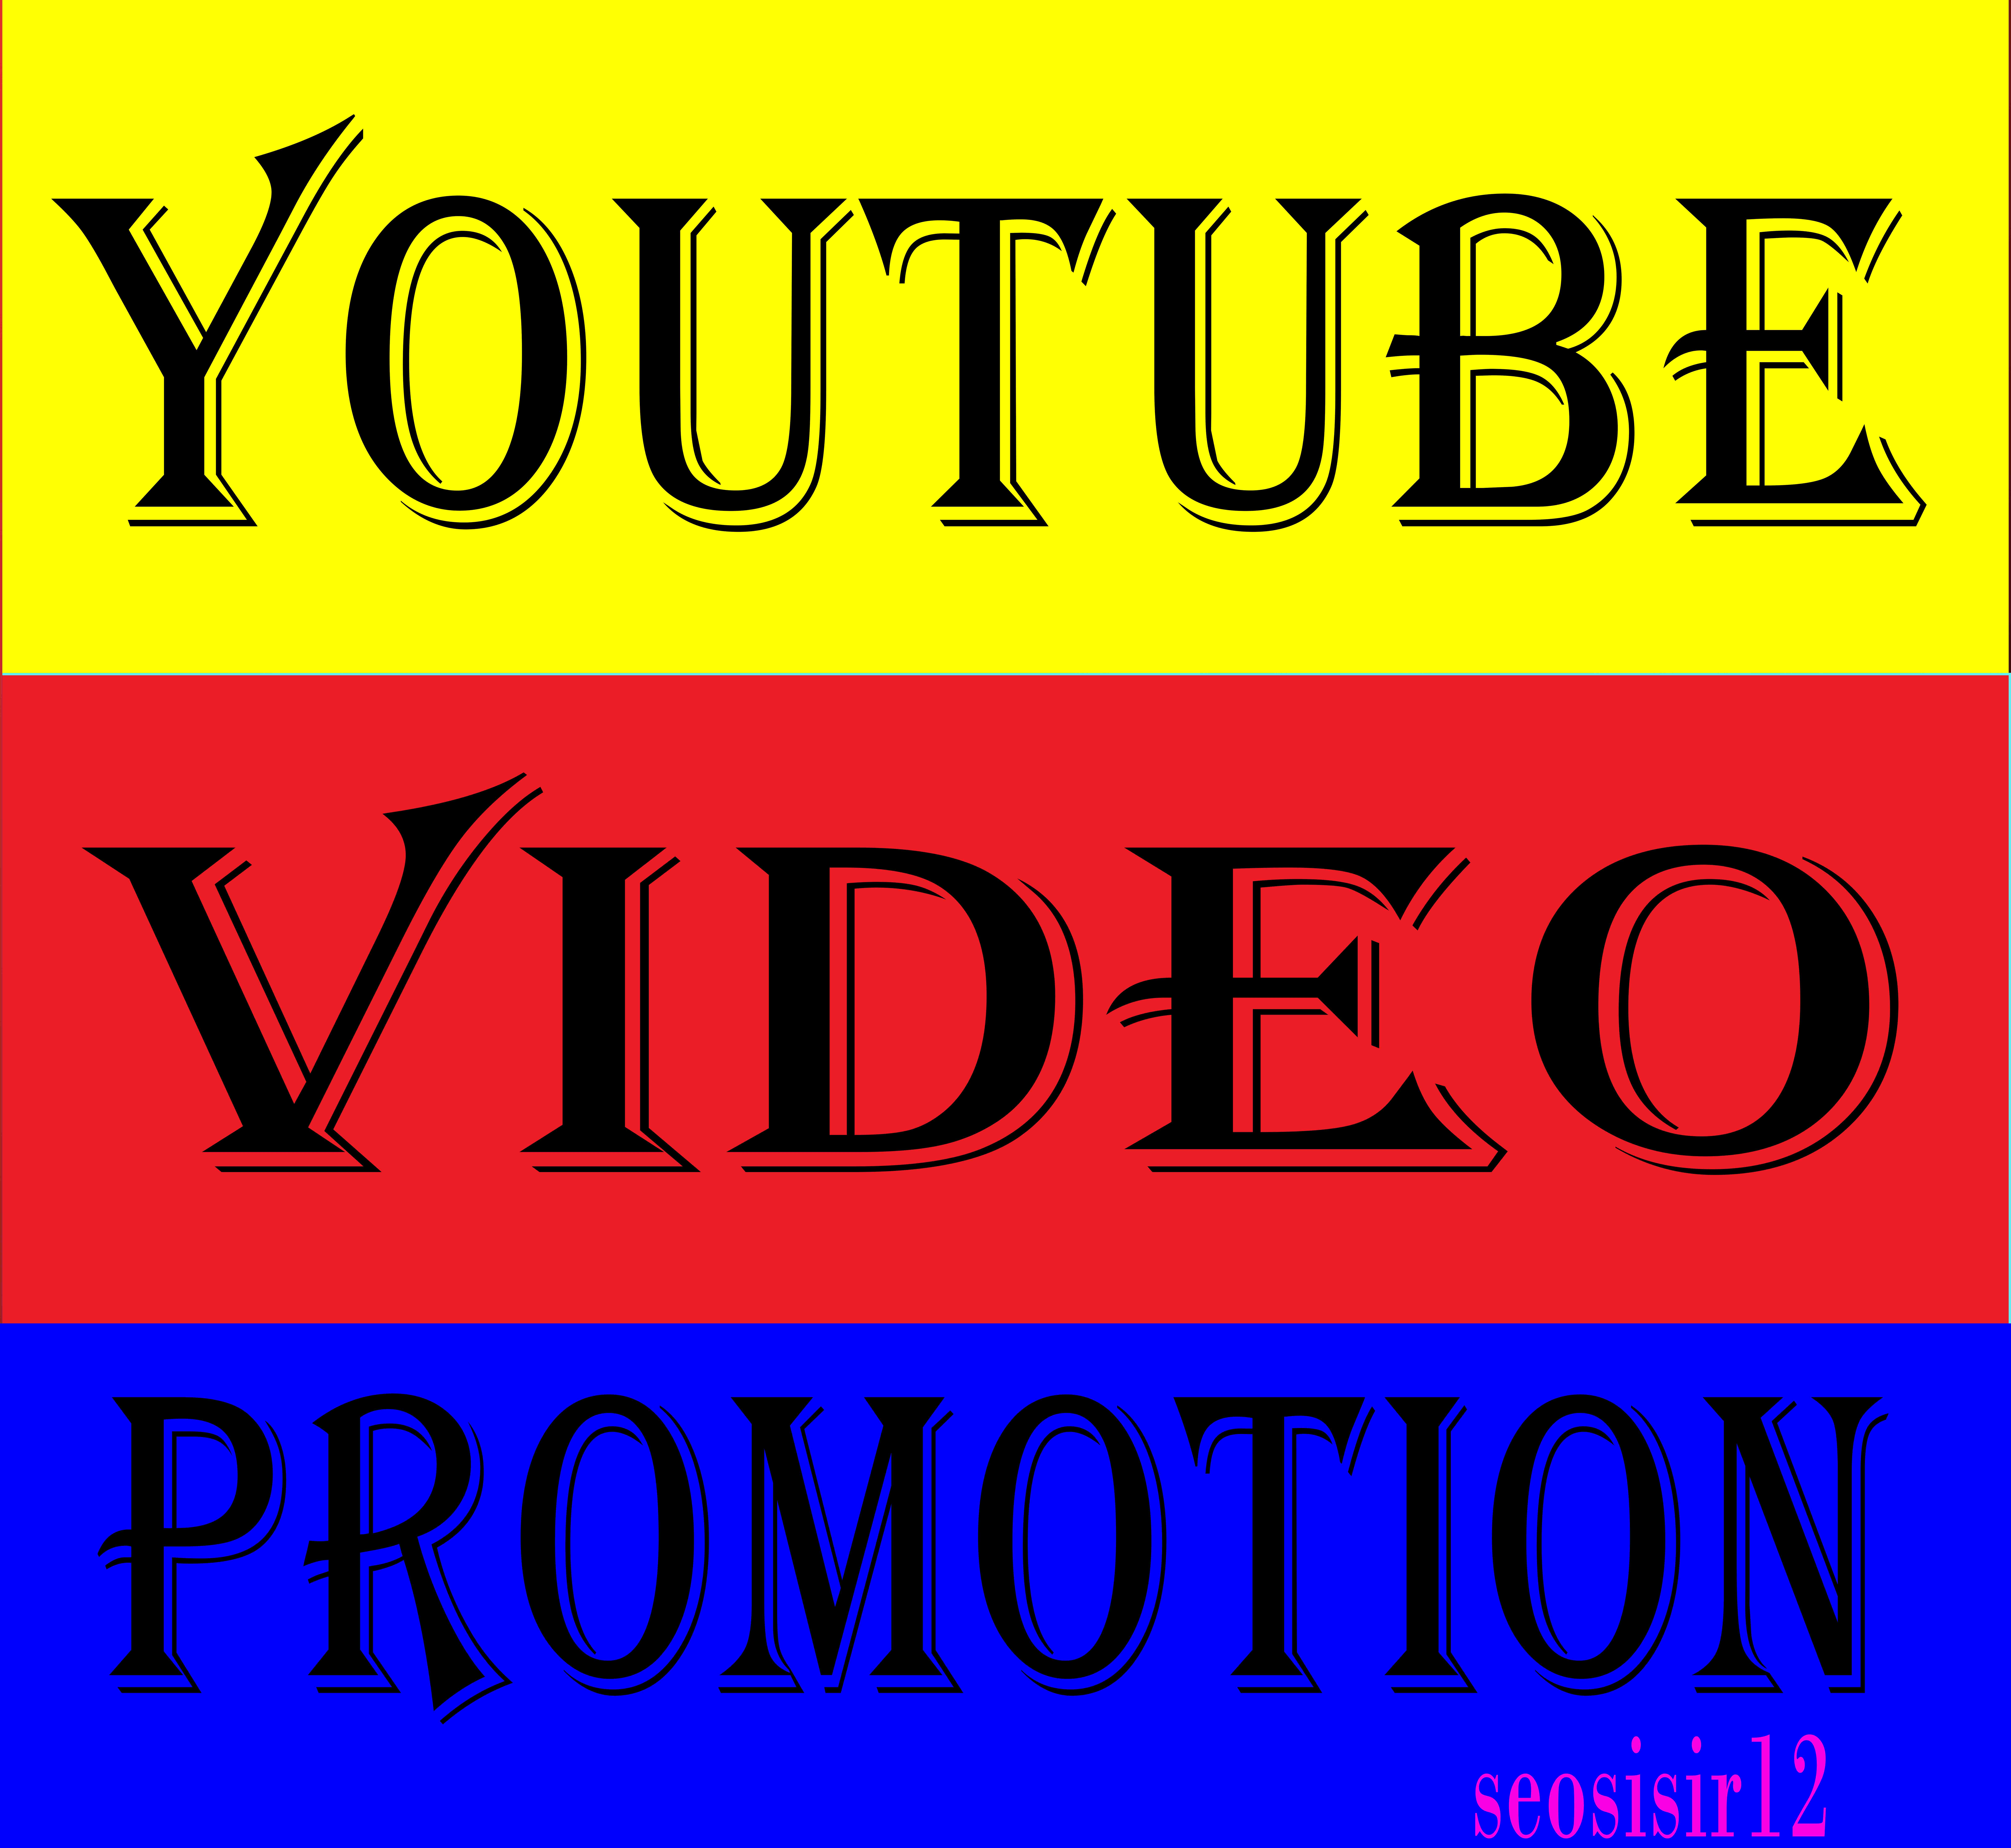 Youtube real video promotion and marketing for USA